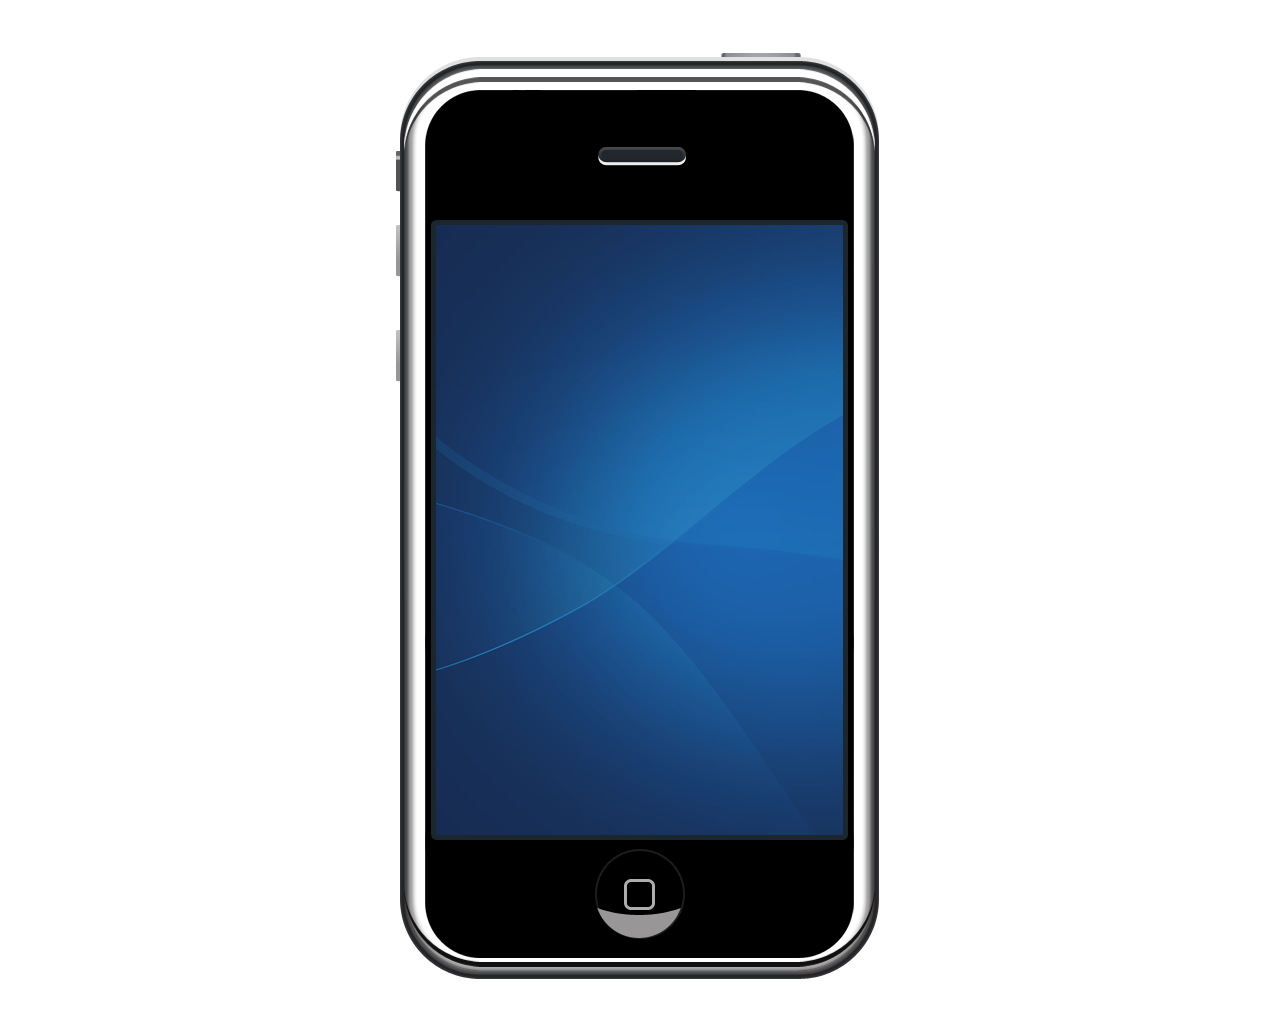 Iphone .png. Apple png images free